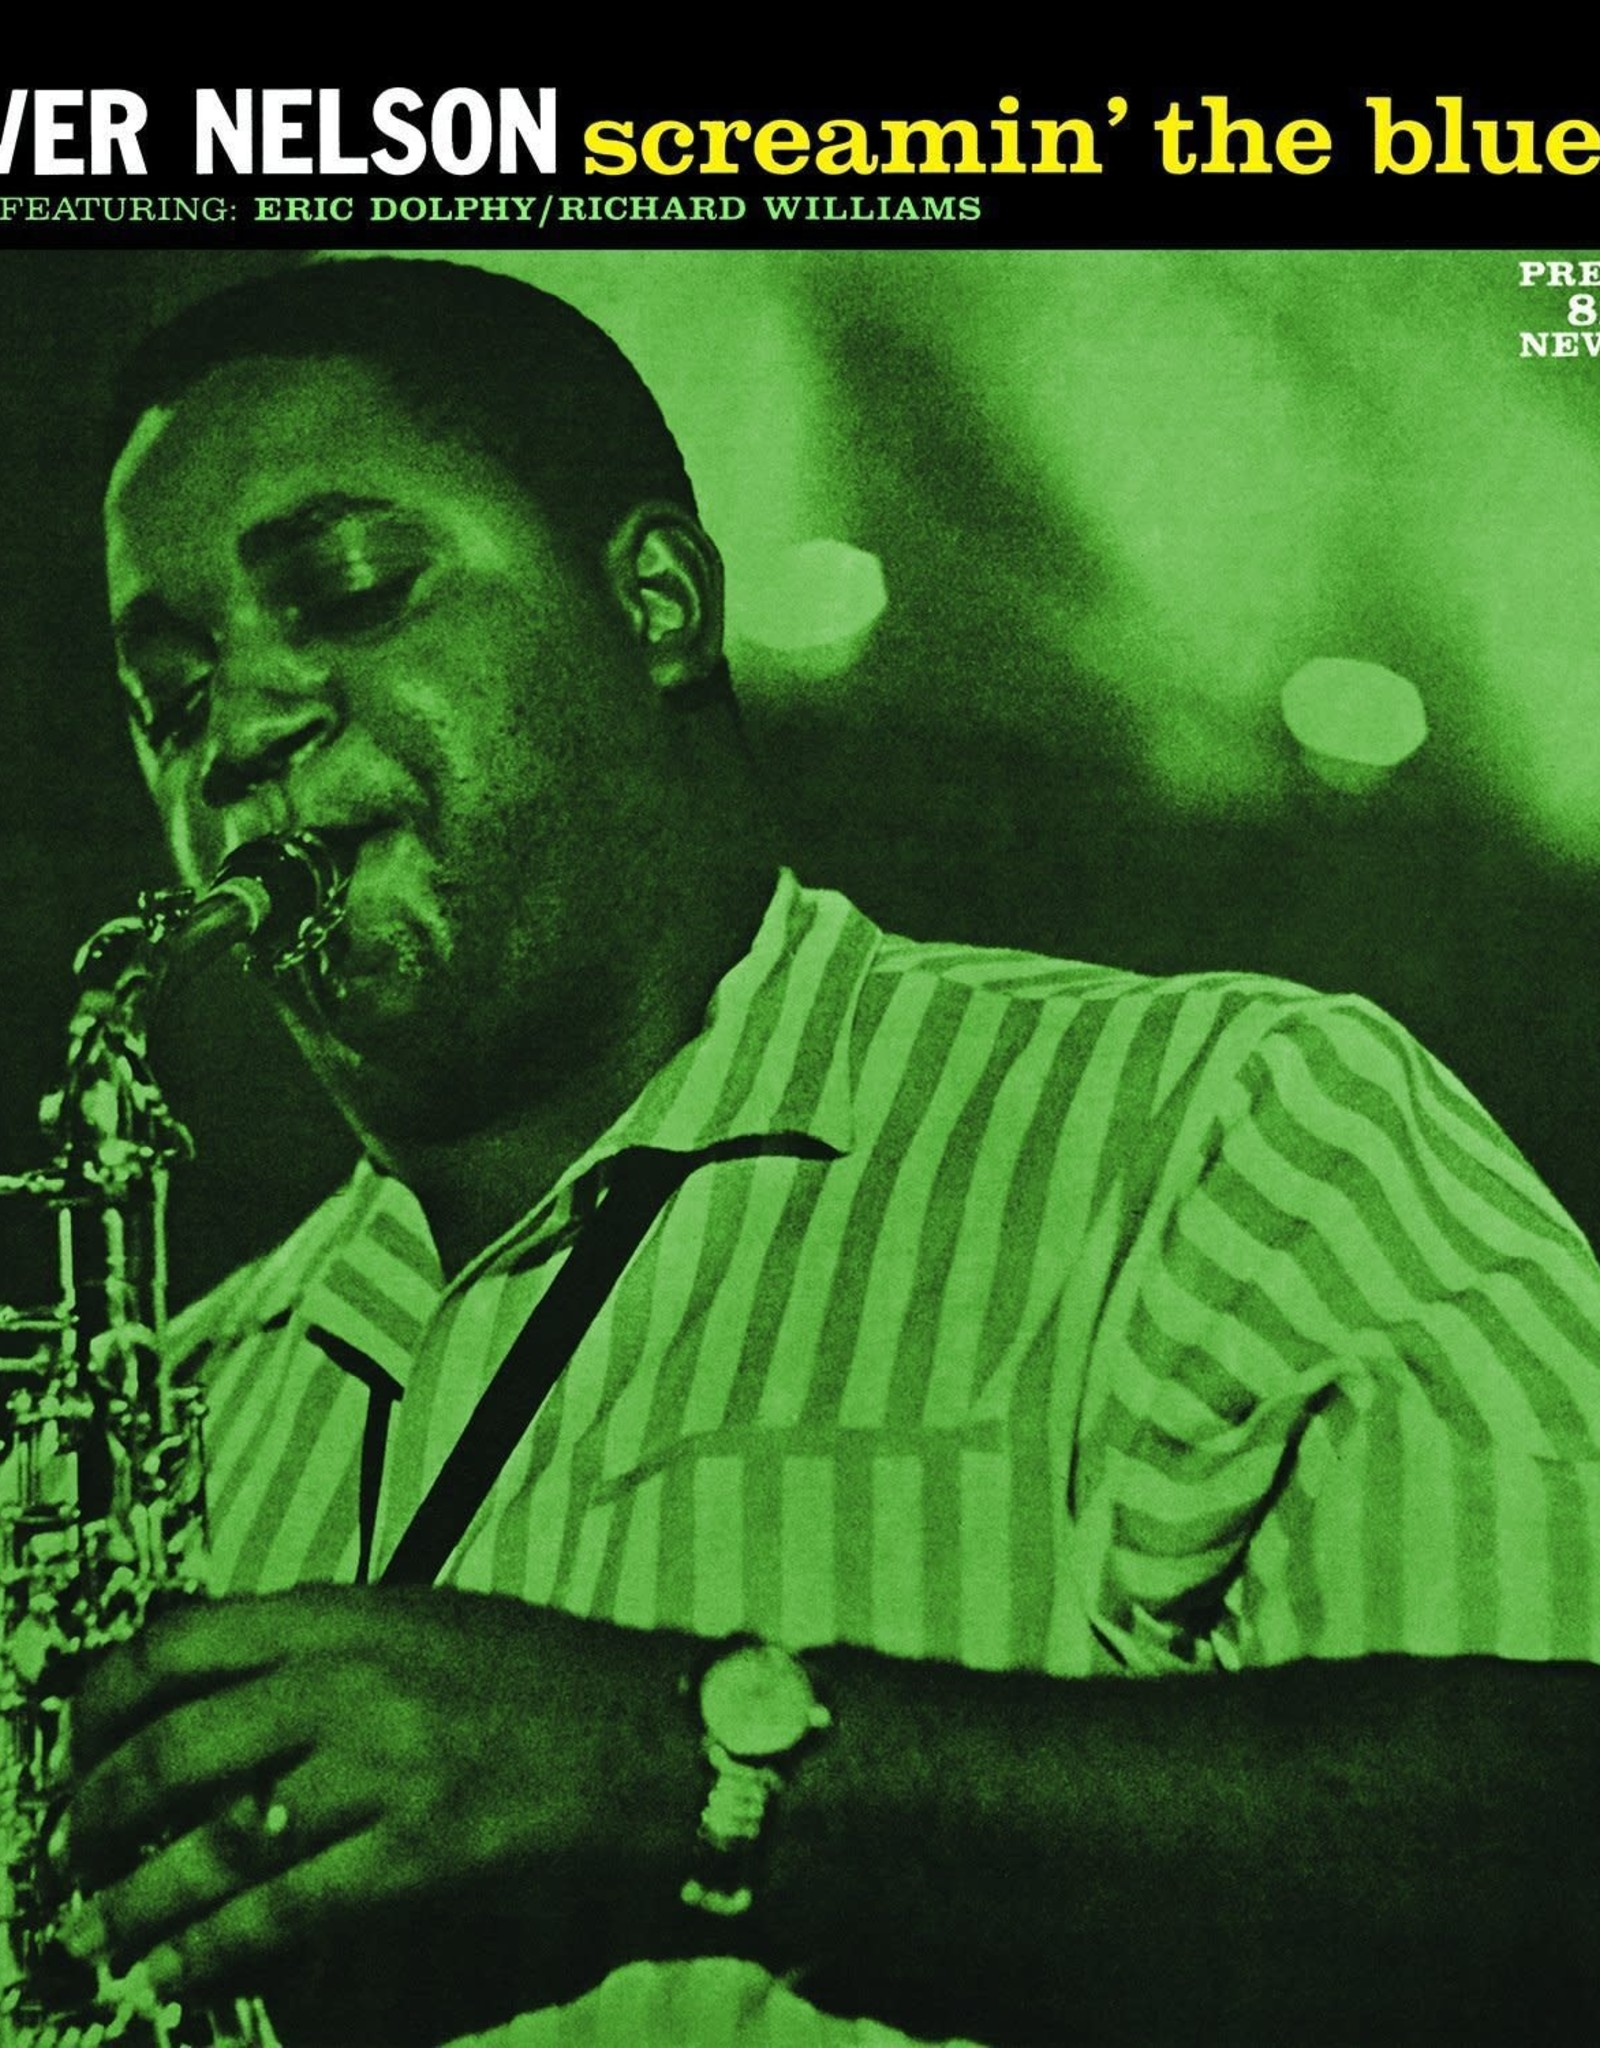 Oliver Nelson - Screamin' The Blues (Eric Dolphy)